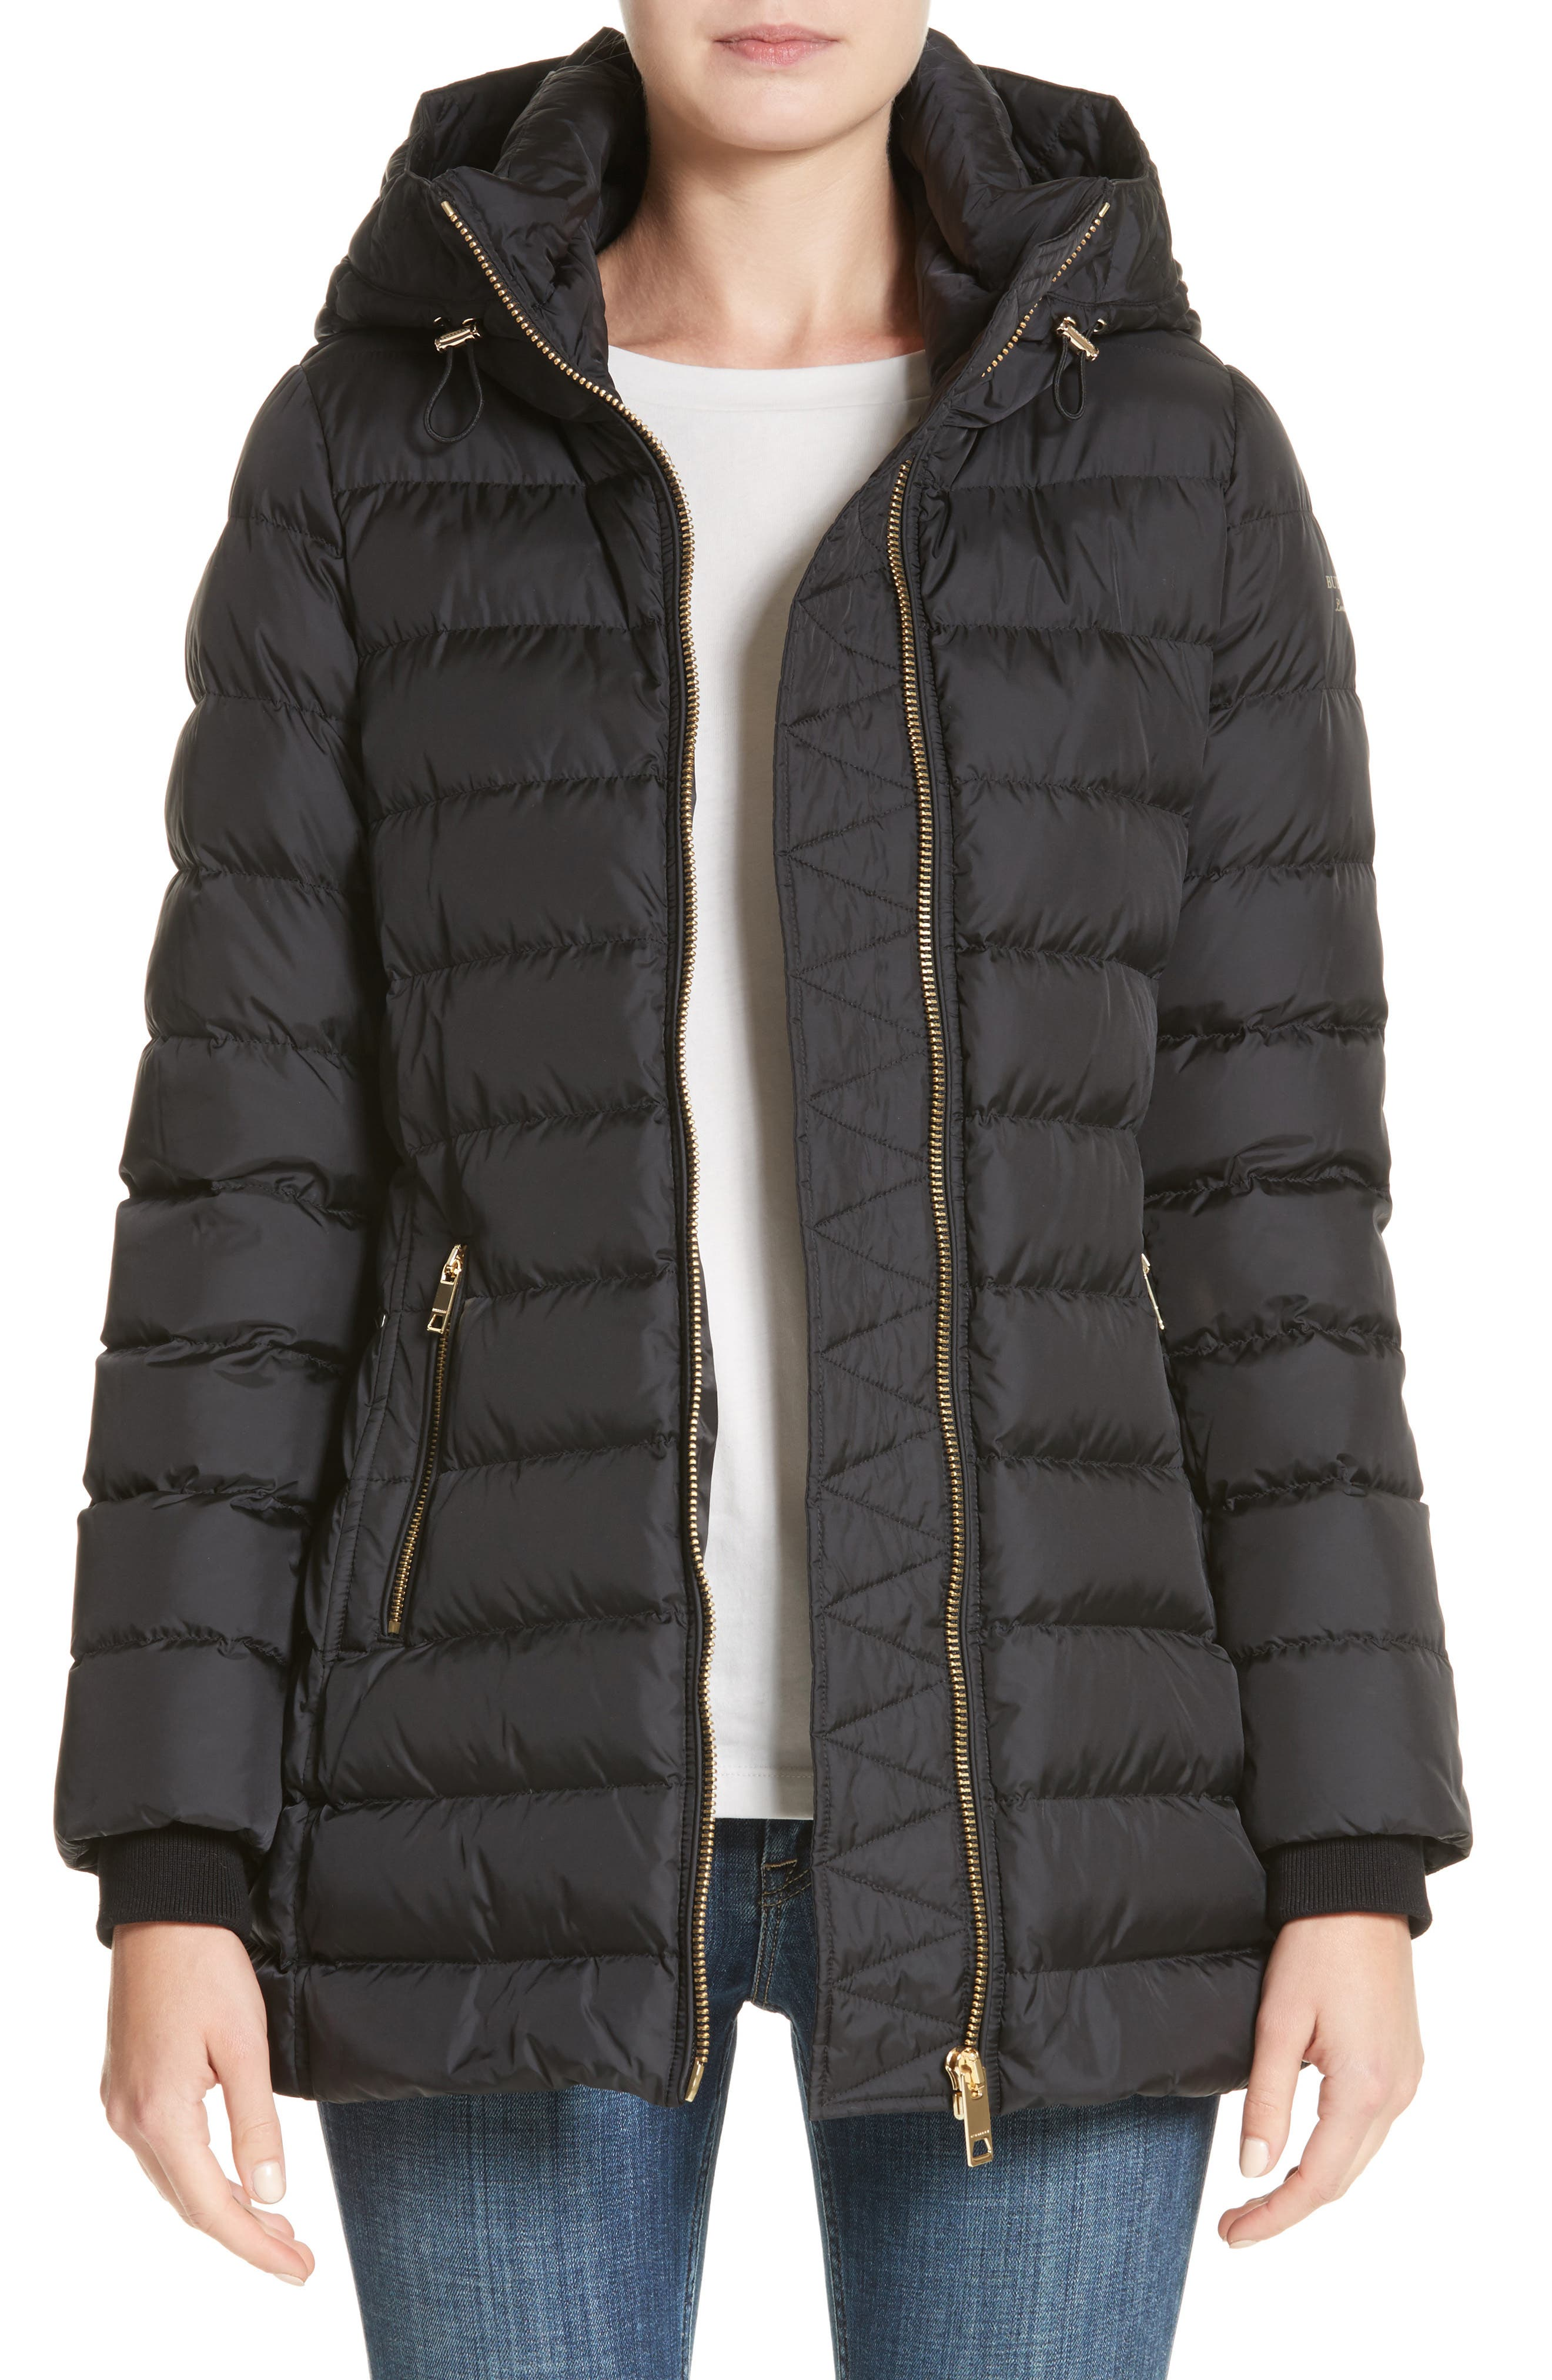 Limefield Hooded Puffer Coat,                             Main thumbnail 1, color,                             001